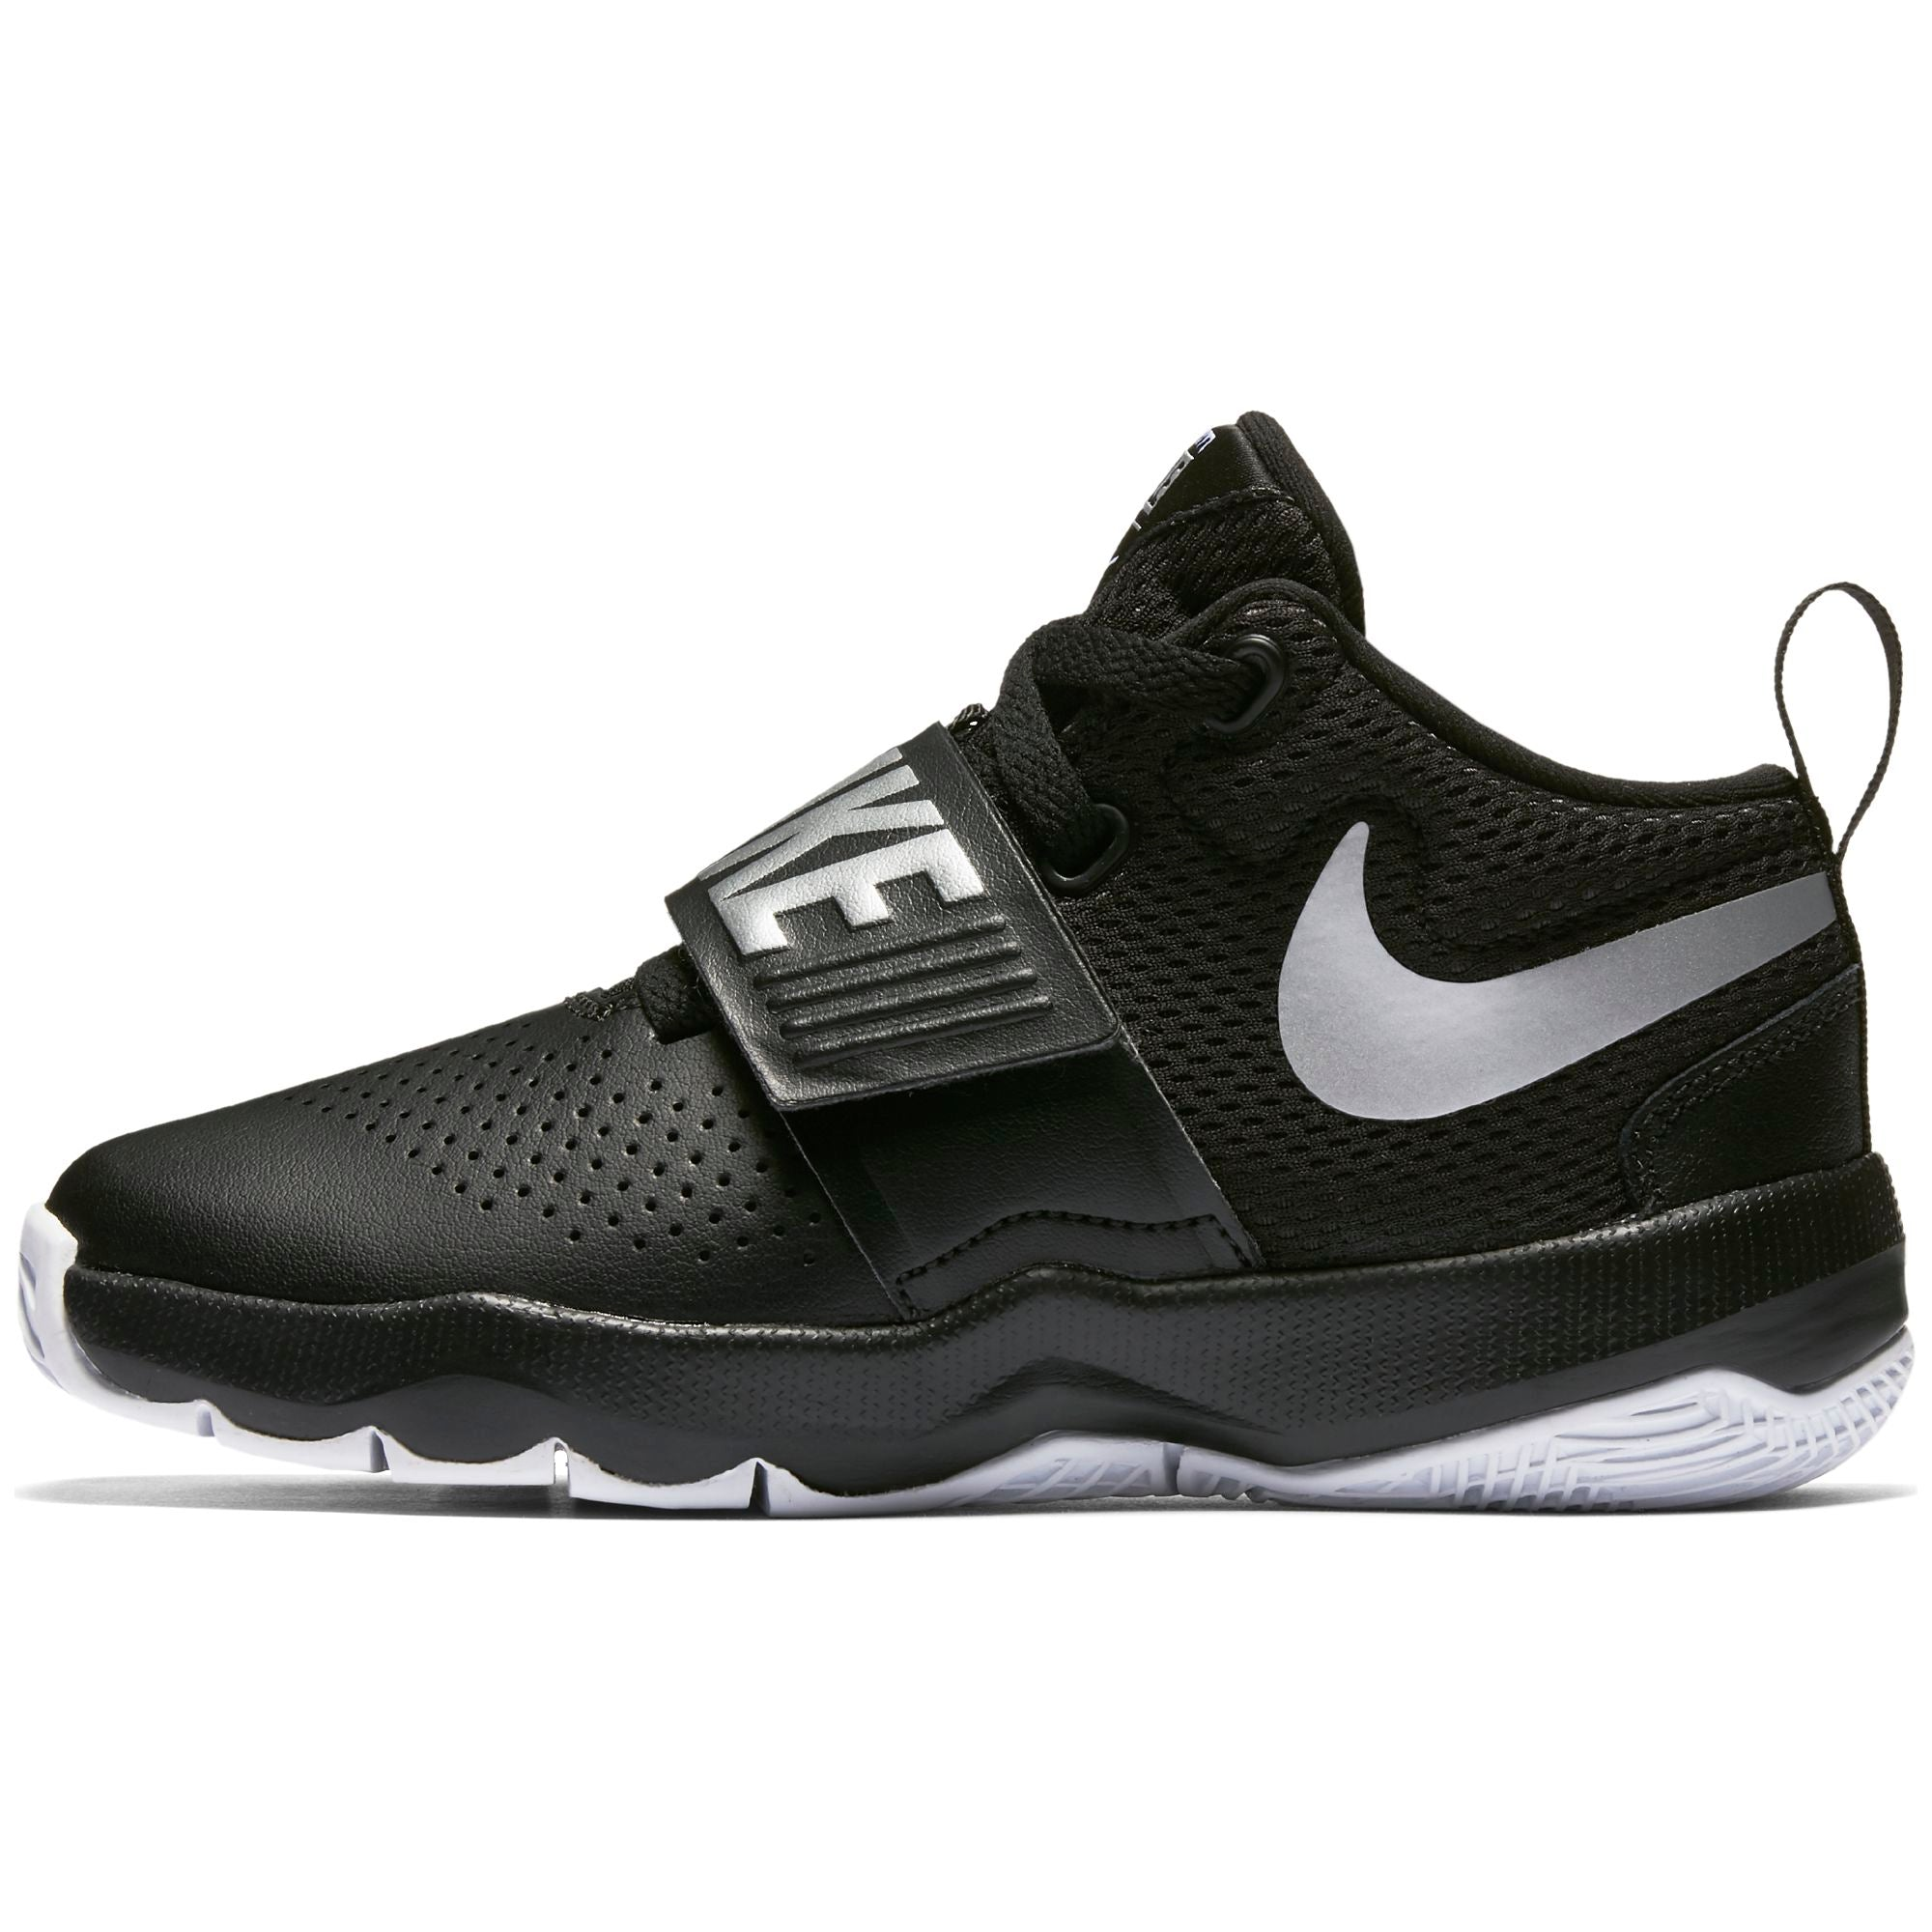 Nike Kids Team Hustle D 8 Pre-School Basketball Boot/Shoe - NK-881942-001